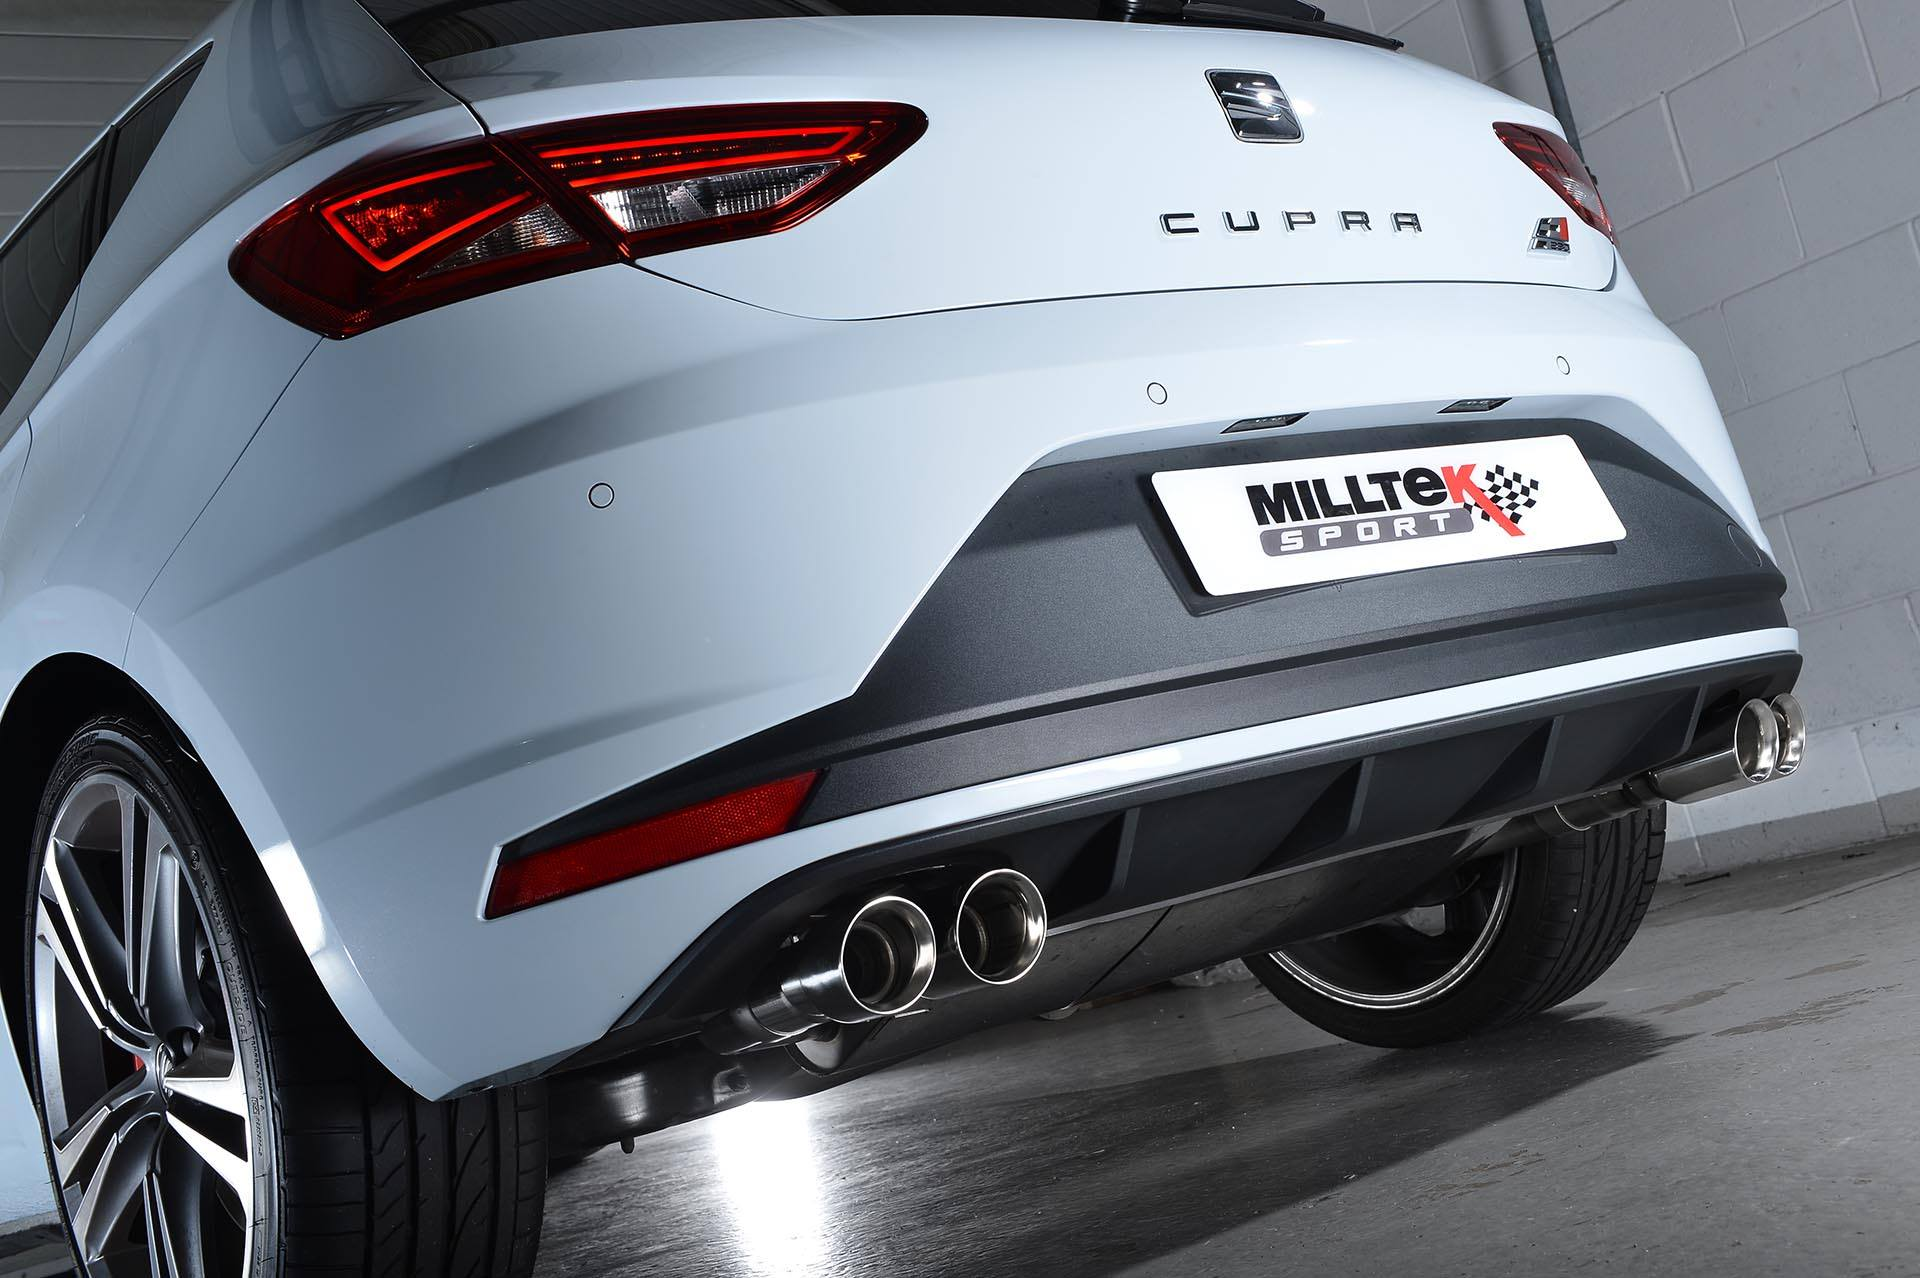 Seat Leon Cupra Ps Gets Milltek Performance Exhaust Photo Gallery on Tsi 2 0 T Engine